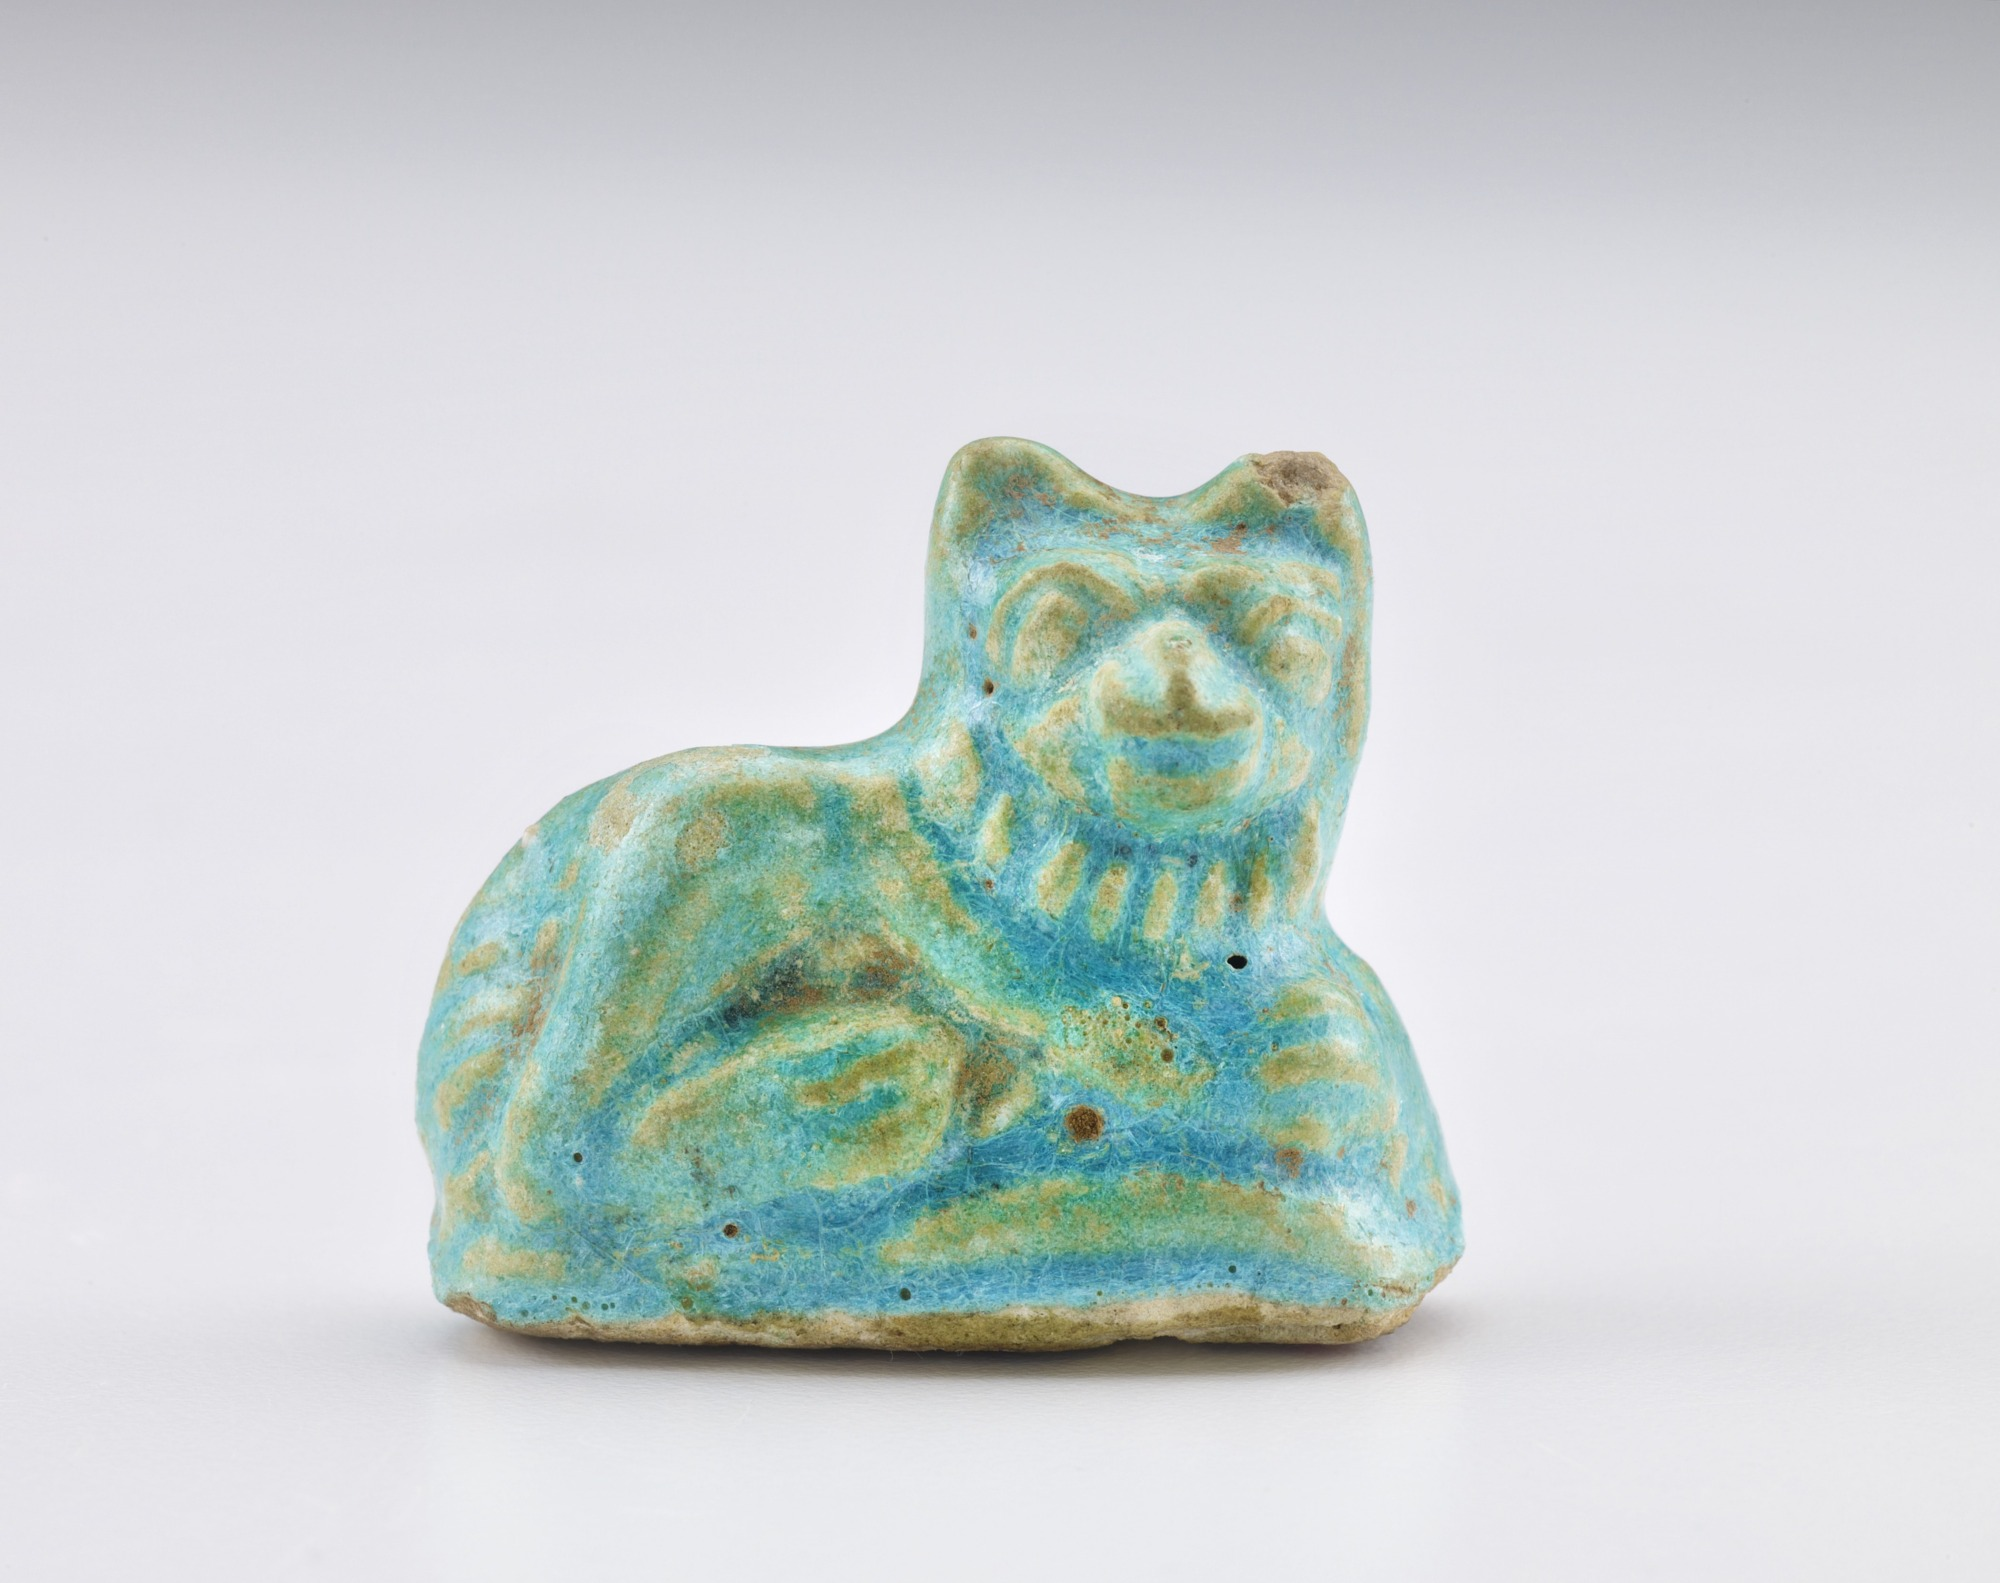 front: Figure of a small reclining animal